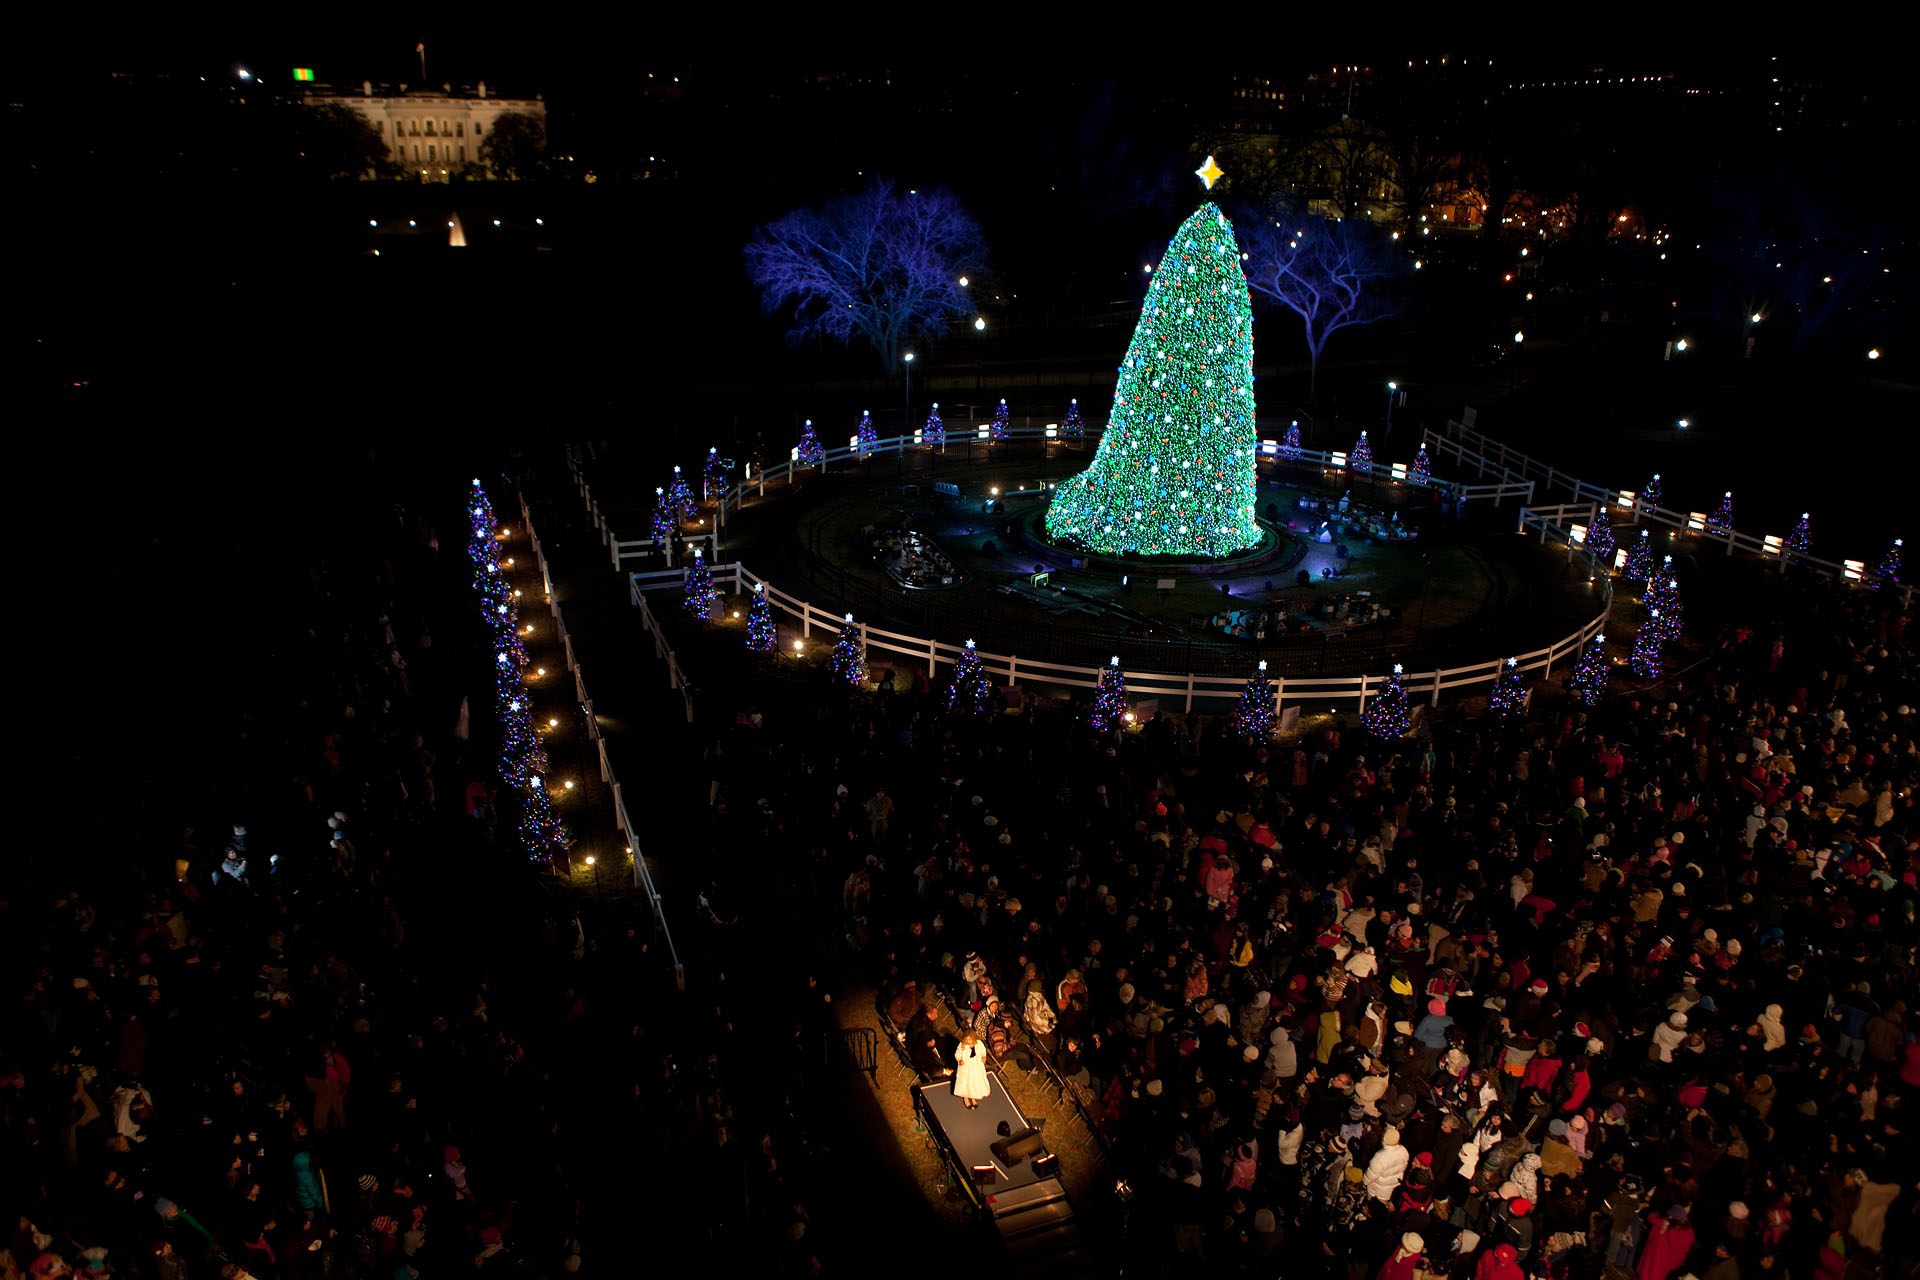 National Christmas Tree Lighting.Attend The National Christmas Tree Lighting Ceremony